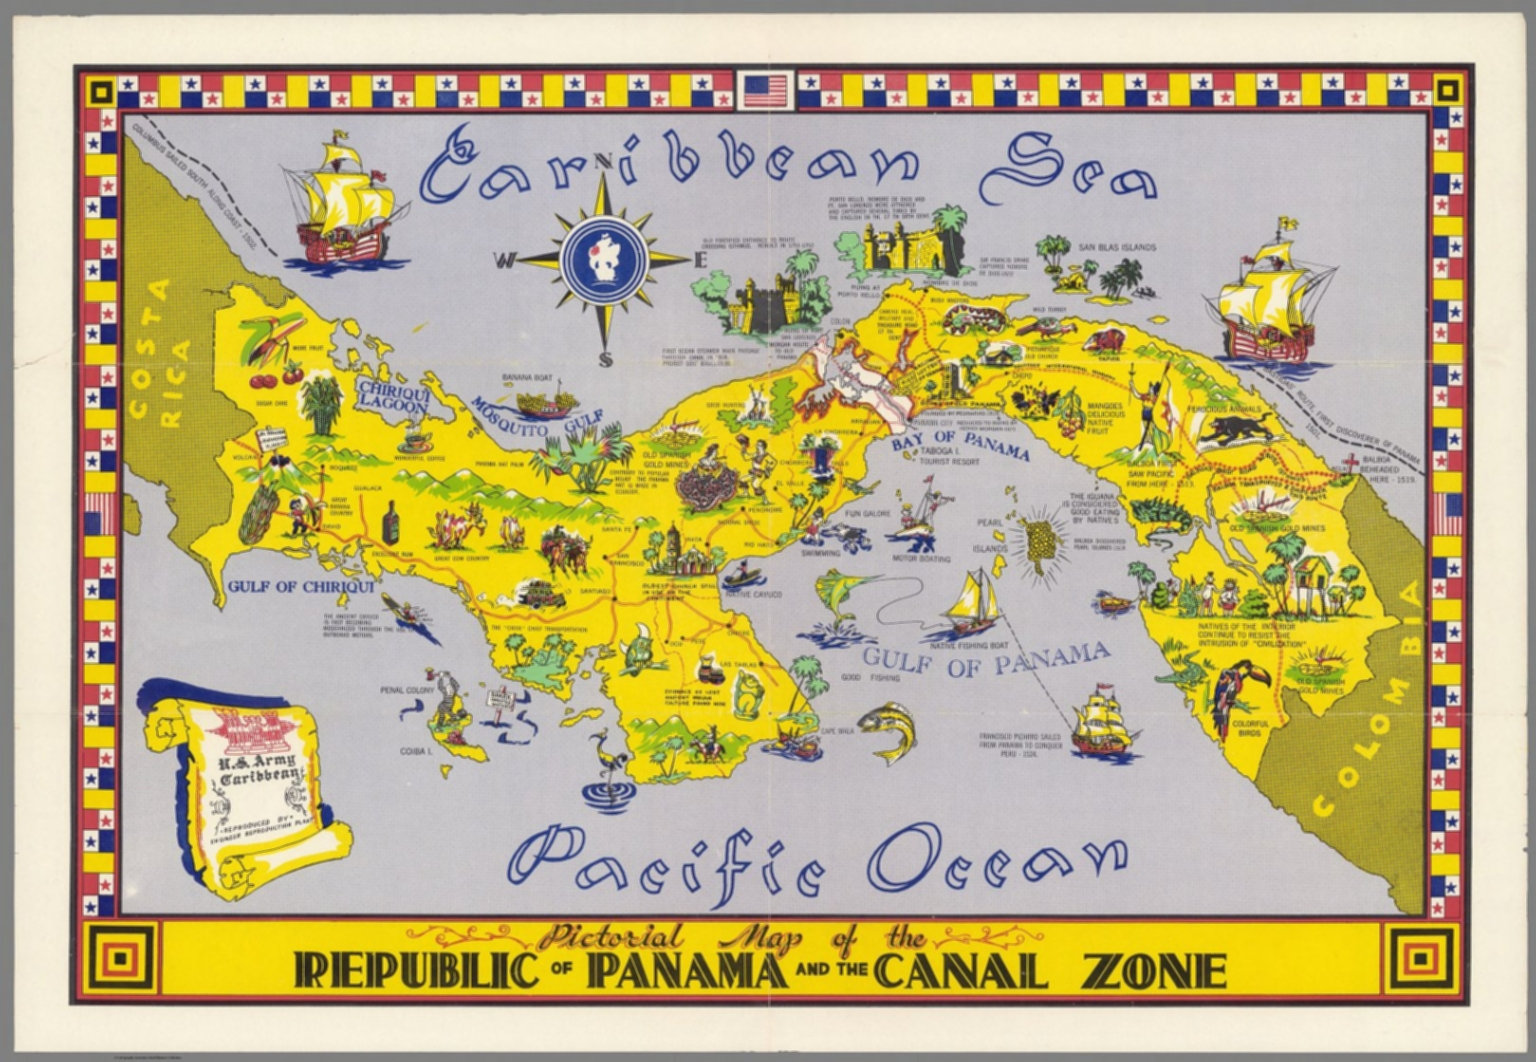 Pictorial map of the Republic of Panama and the Canal Zone  David